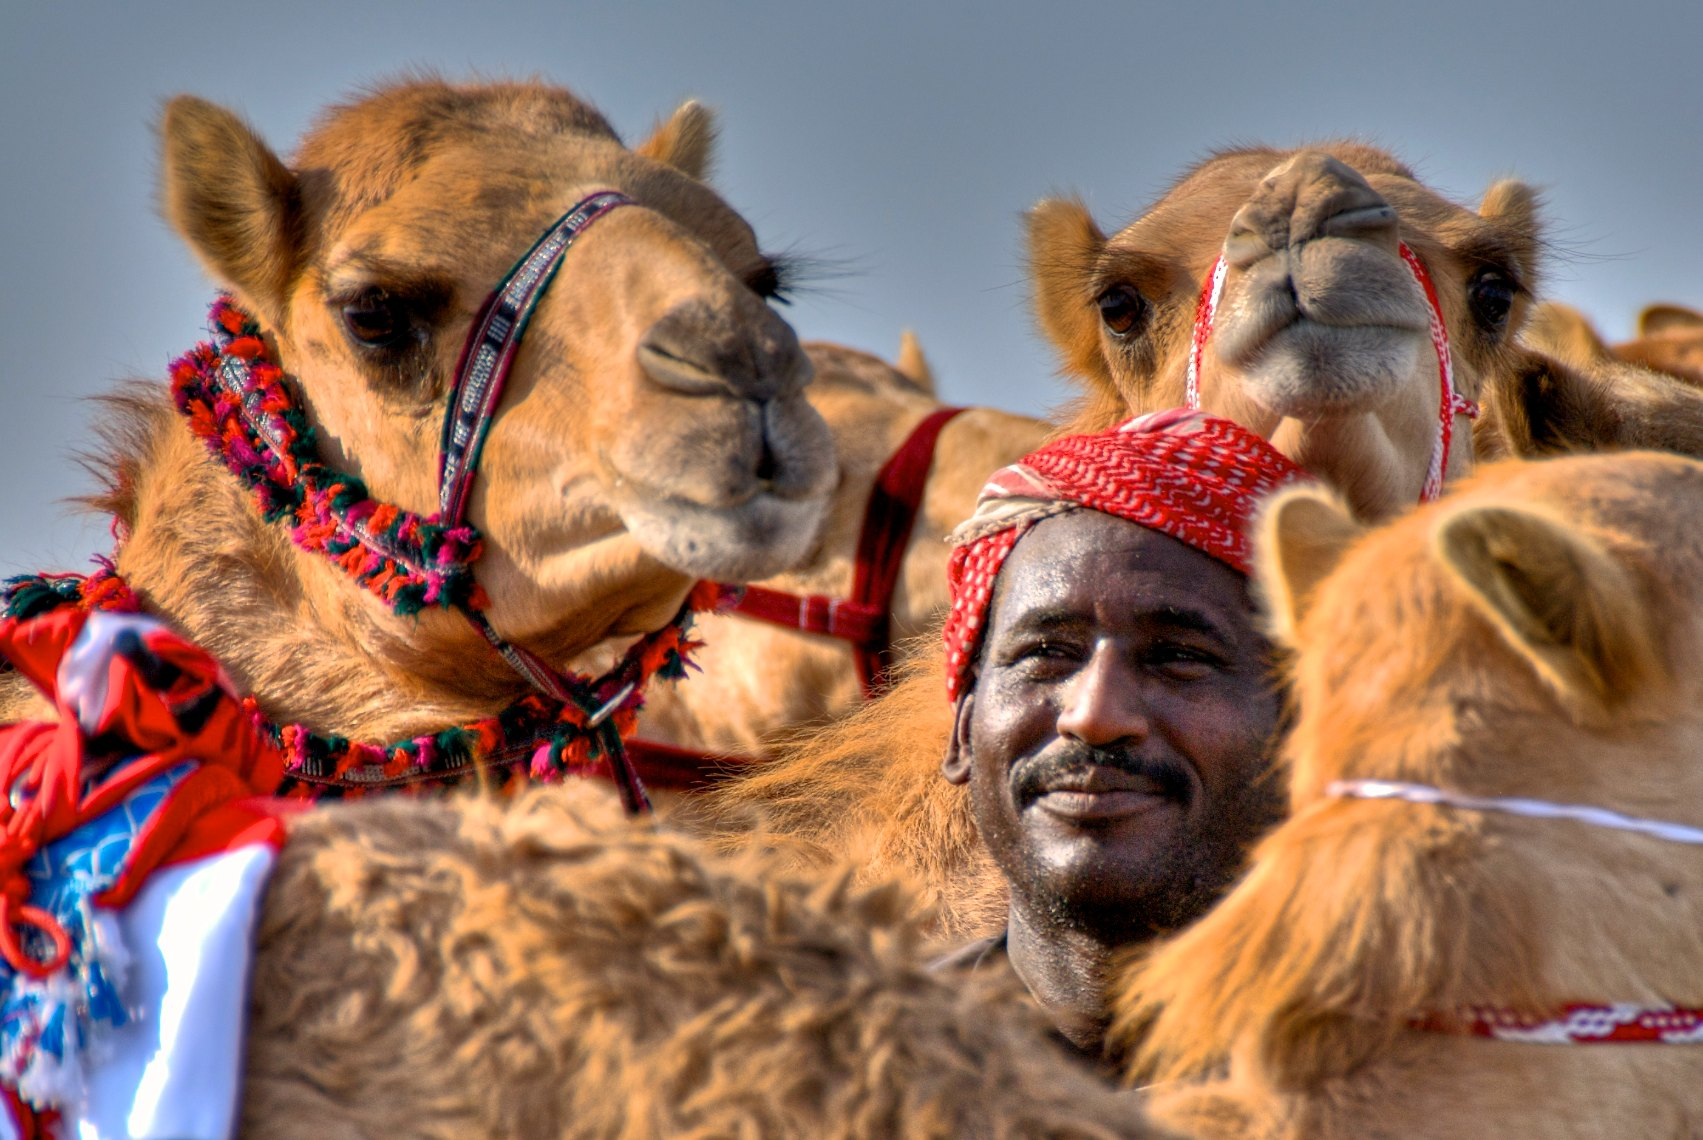 Qatar Al Shahaniya camel race, Man and Camels